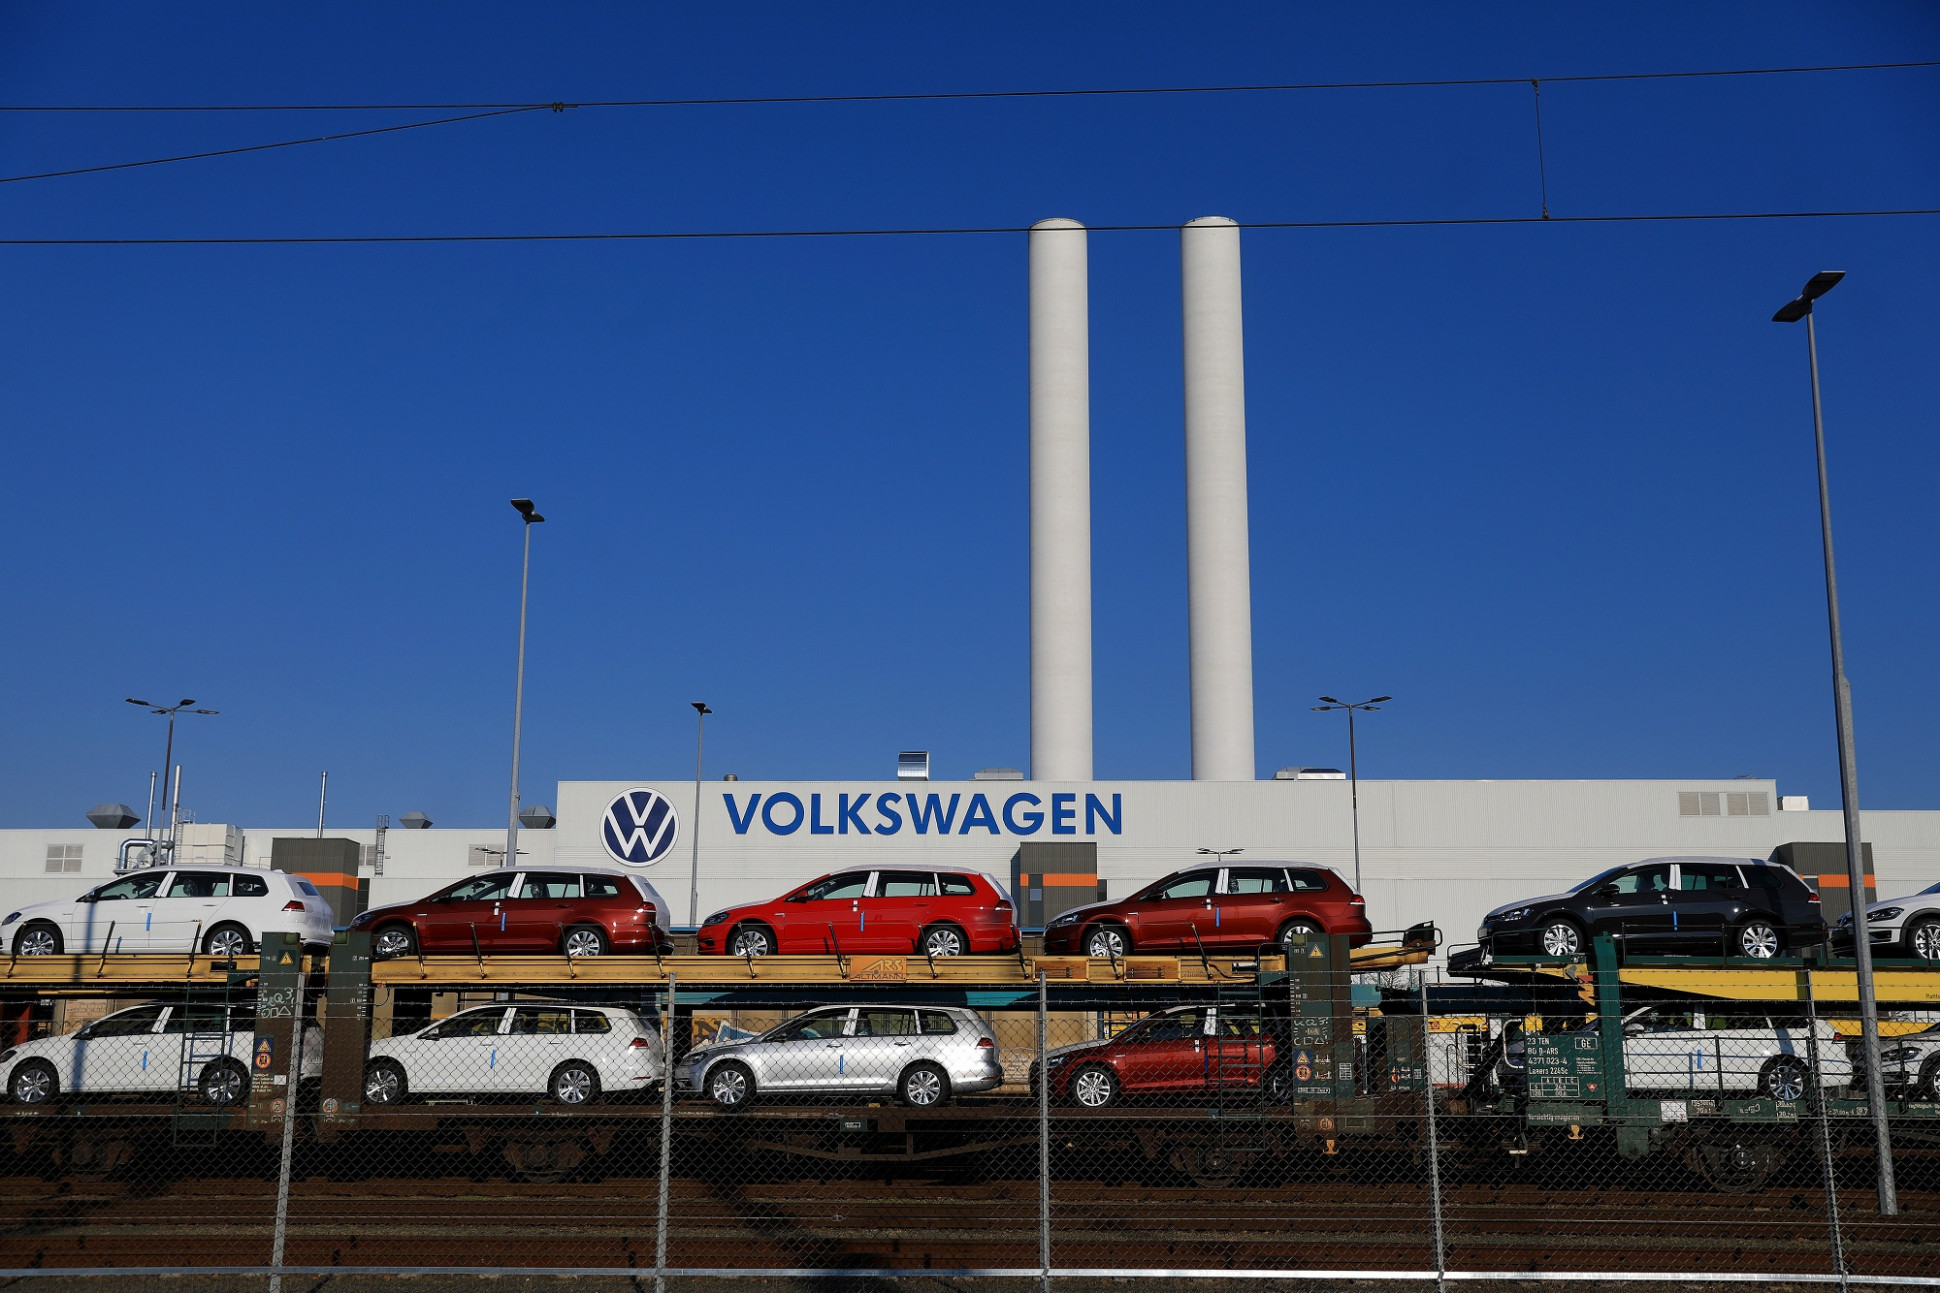 VW Considers Options for Record $6.6 Billion Dividend - Bloomberg